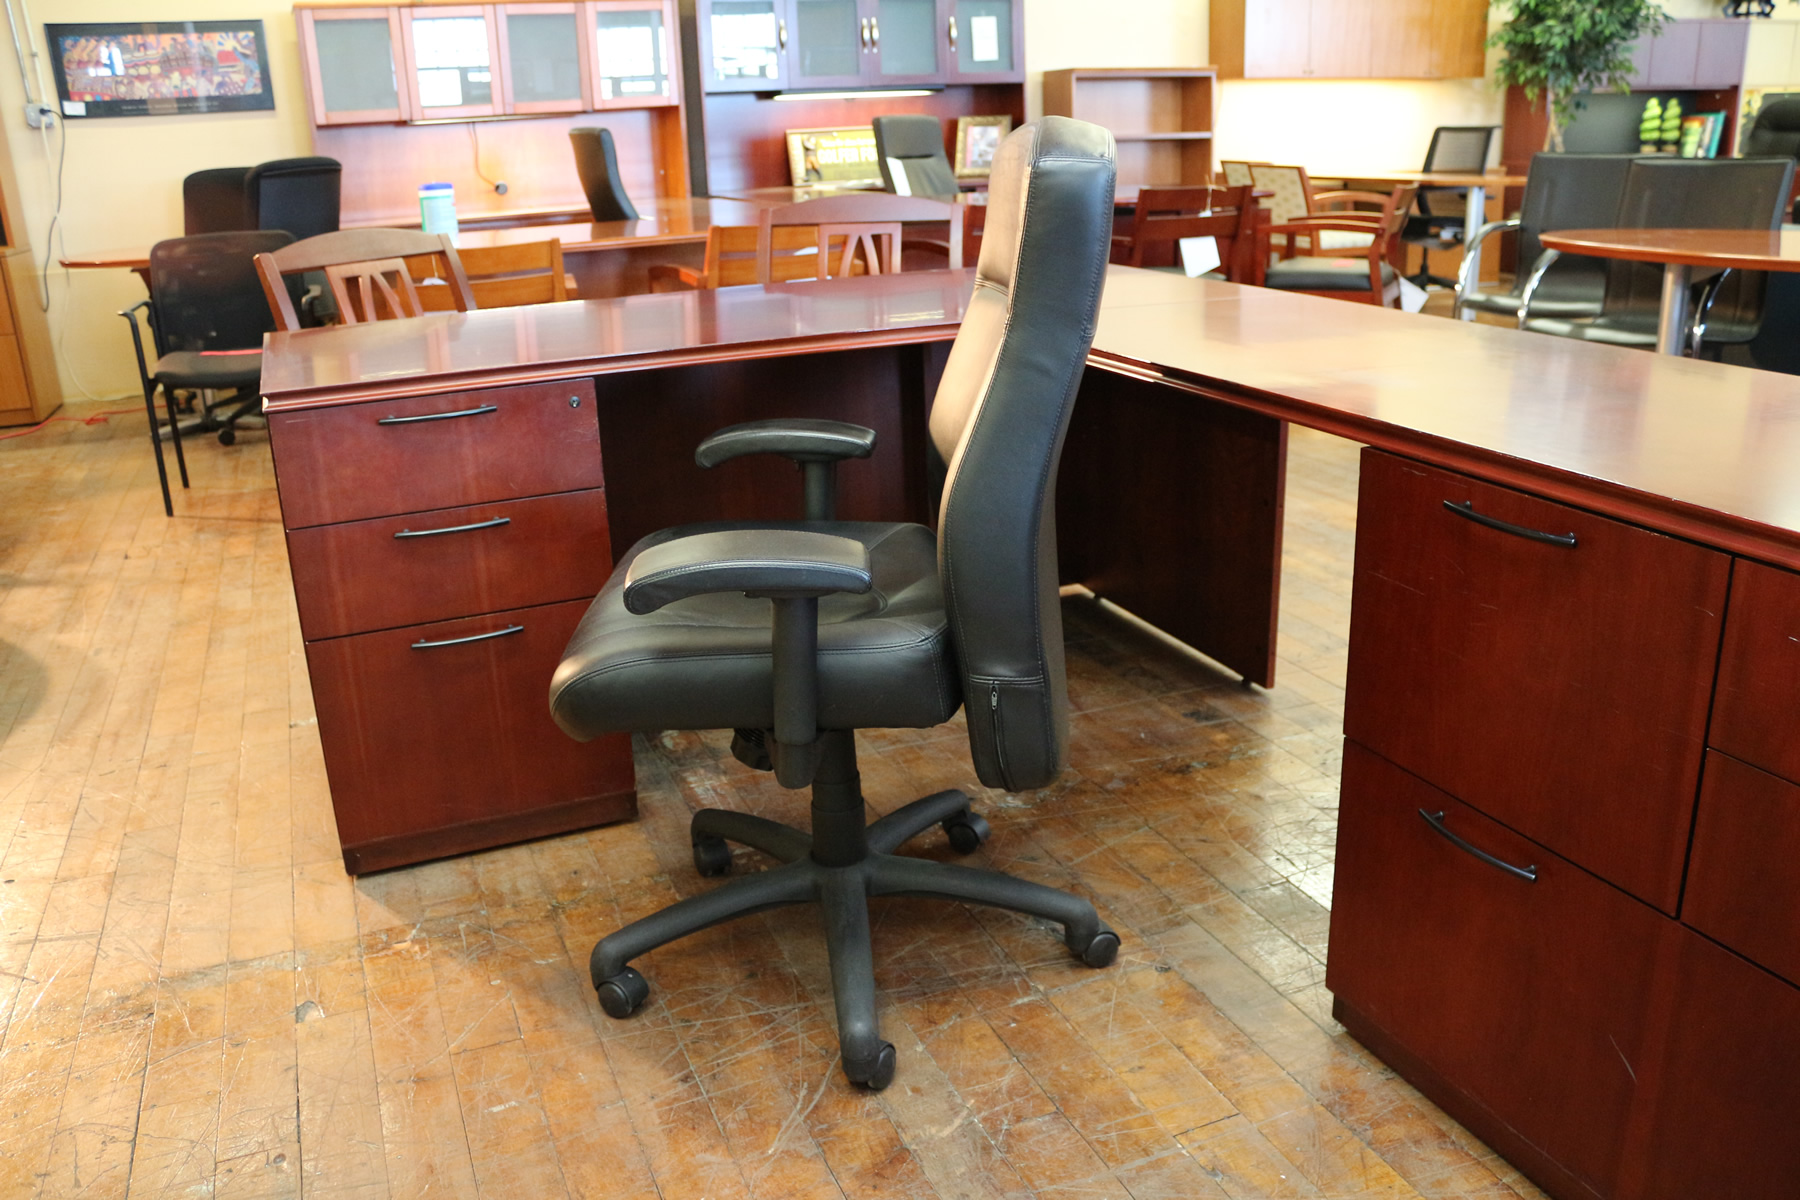 peartreeofficefurniture_peartreeofficefurniture_img_7446.jpg